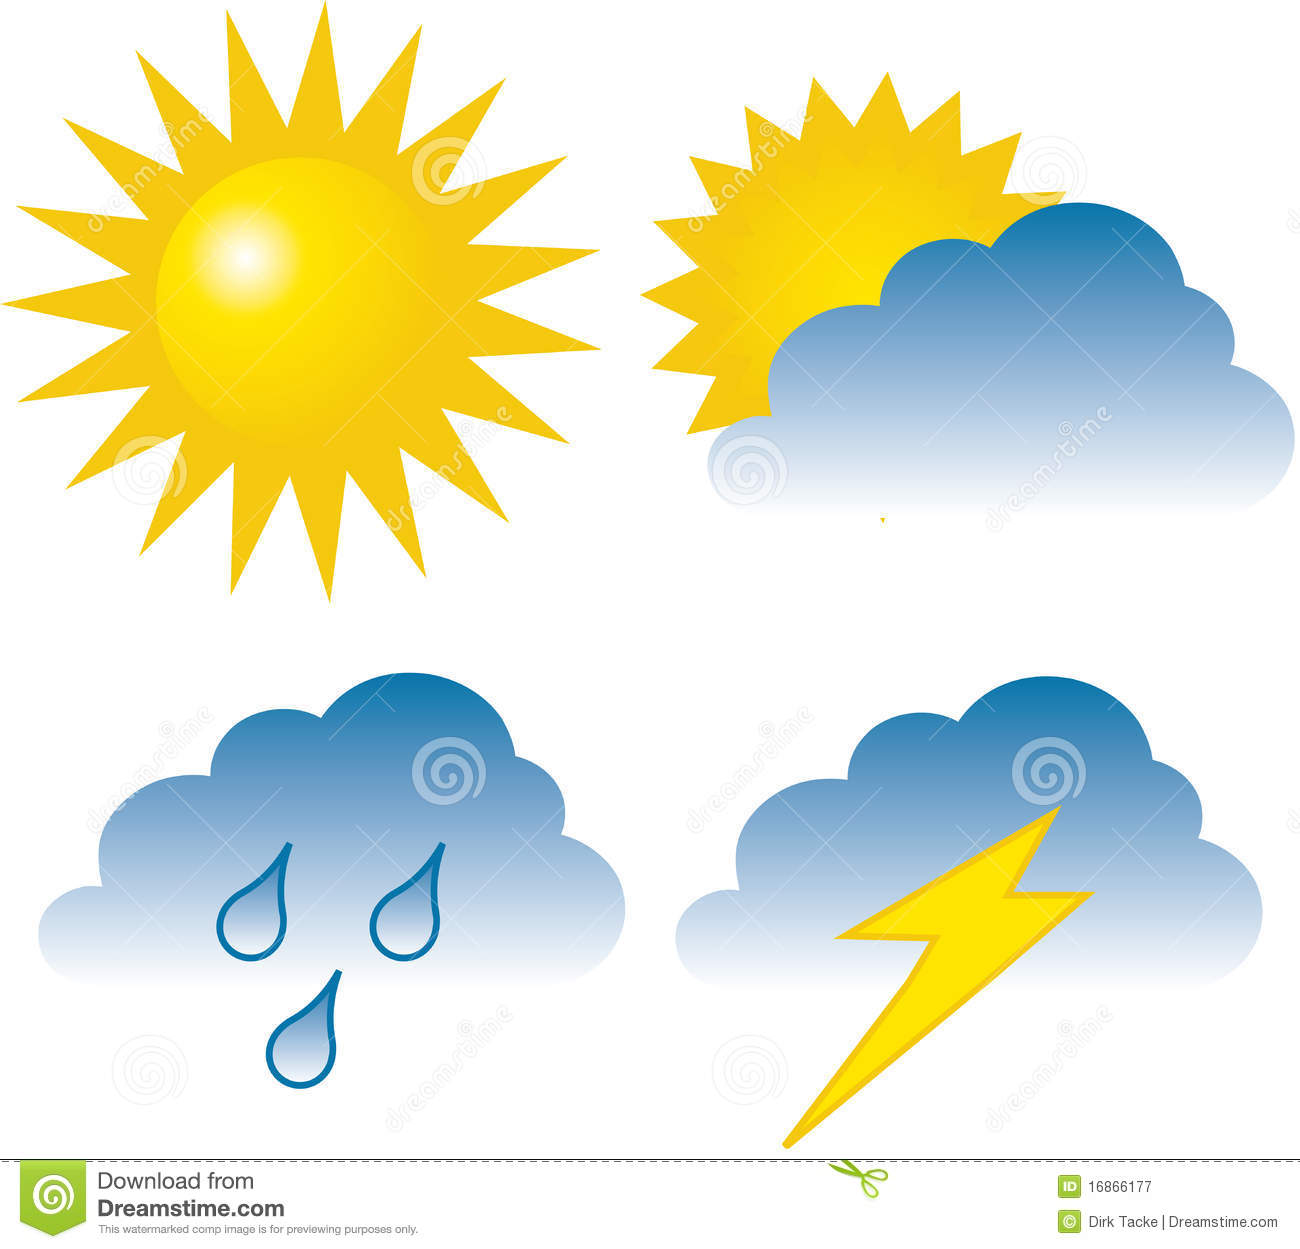 Sunny Weather Symbol : Clip art partly sunny rainy clipart suggest